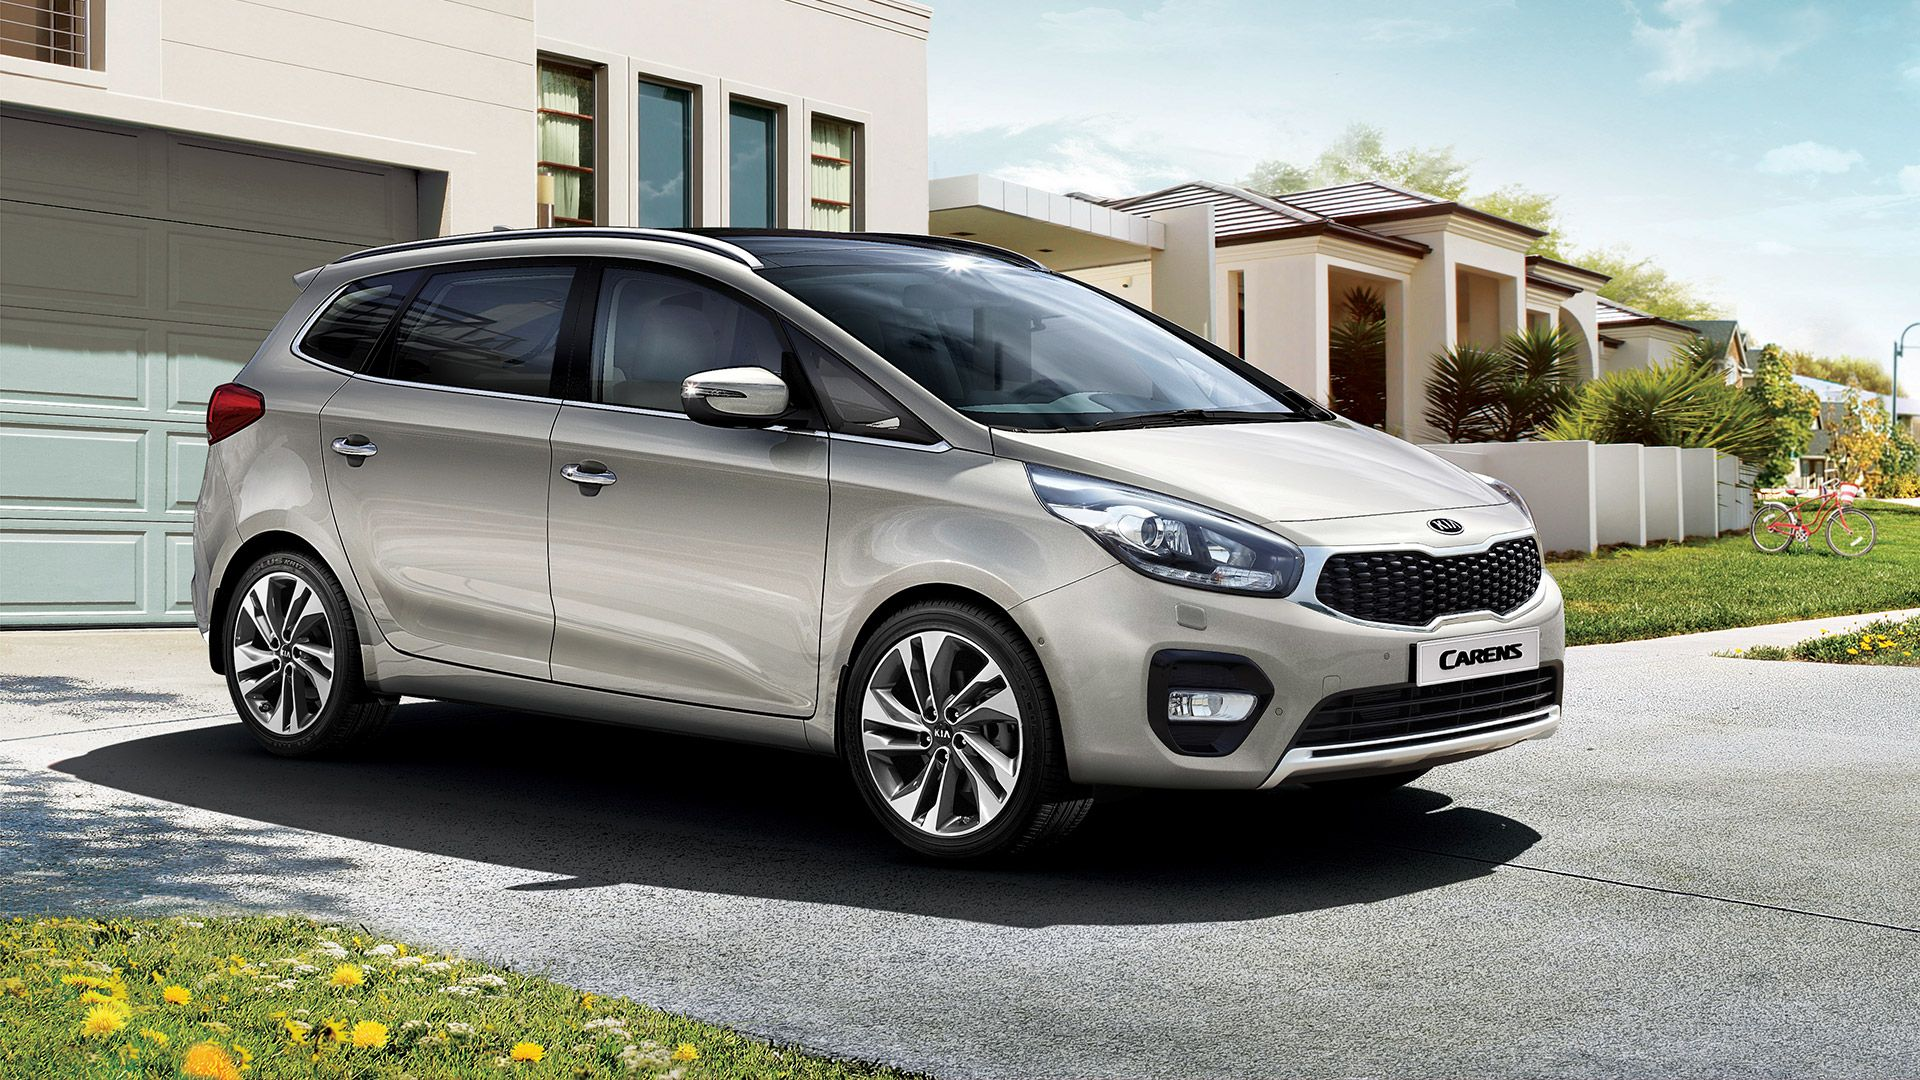 Kia TB 1.8 Petrol Engine Kia, Kia rondo, Car